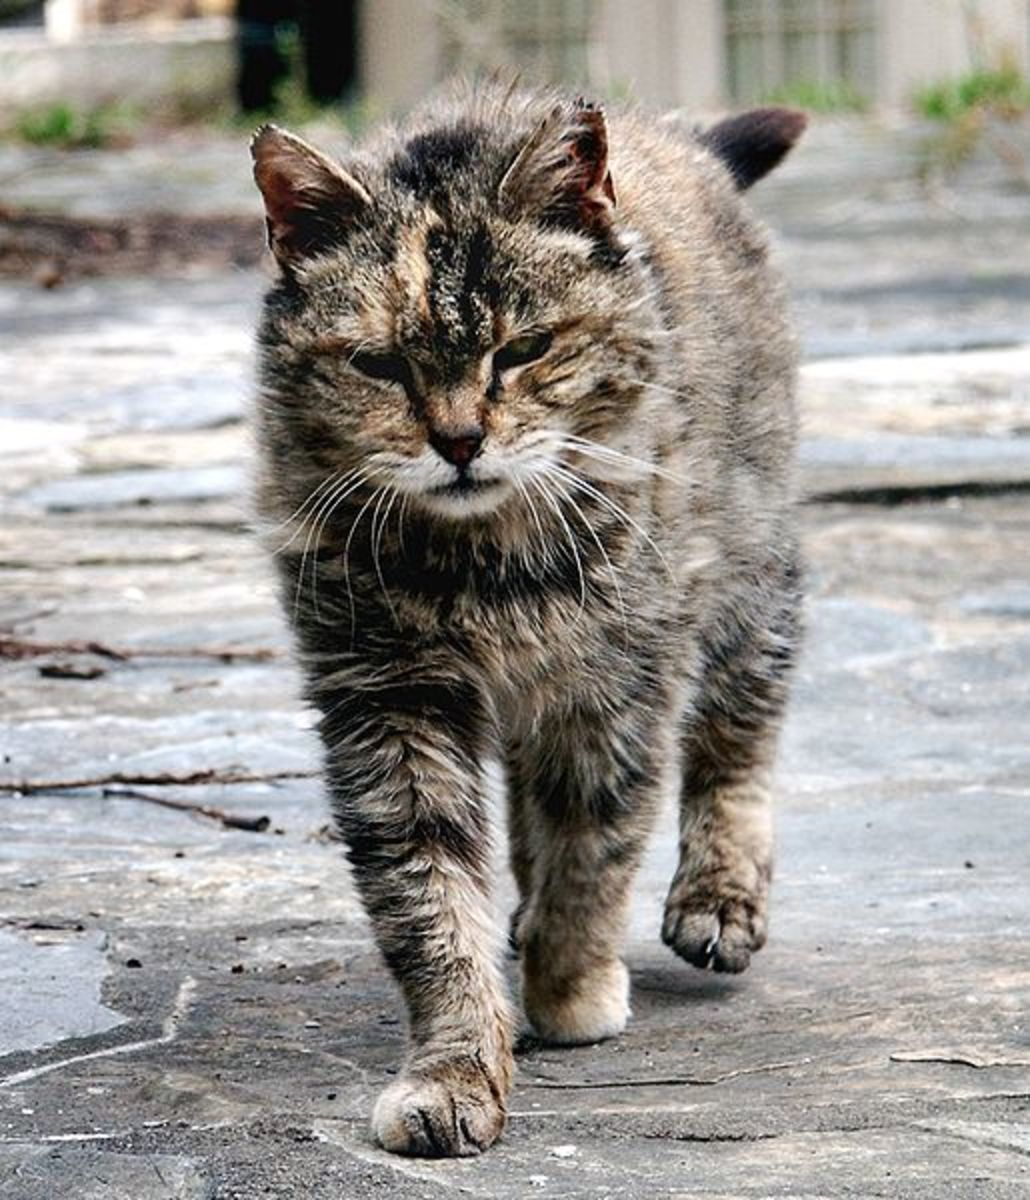 Feral Cat - This is a file from the Wikimedia Commons. Author Stavrolo   Permission (Reusing this file) GFDL  Ferrell Cat